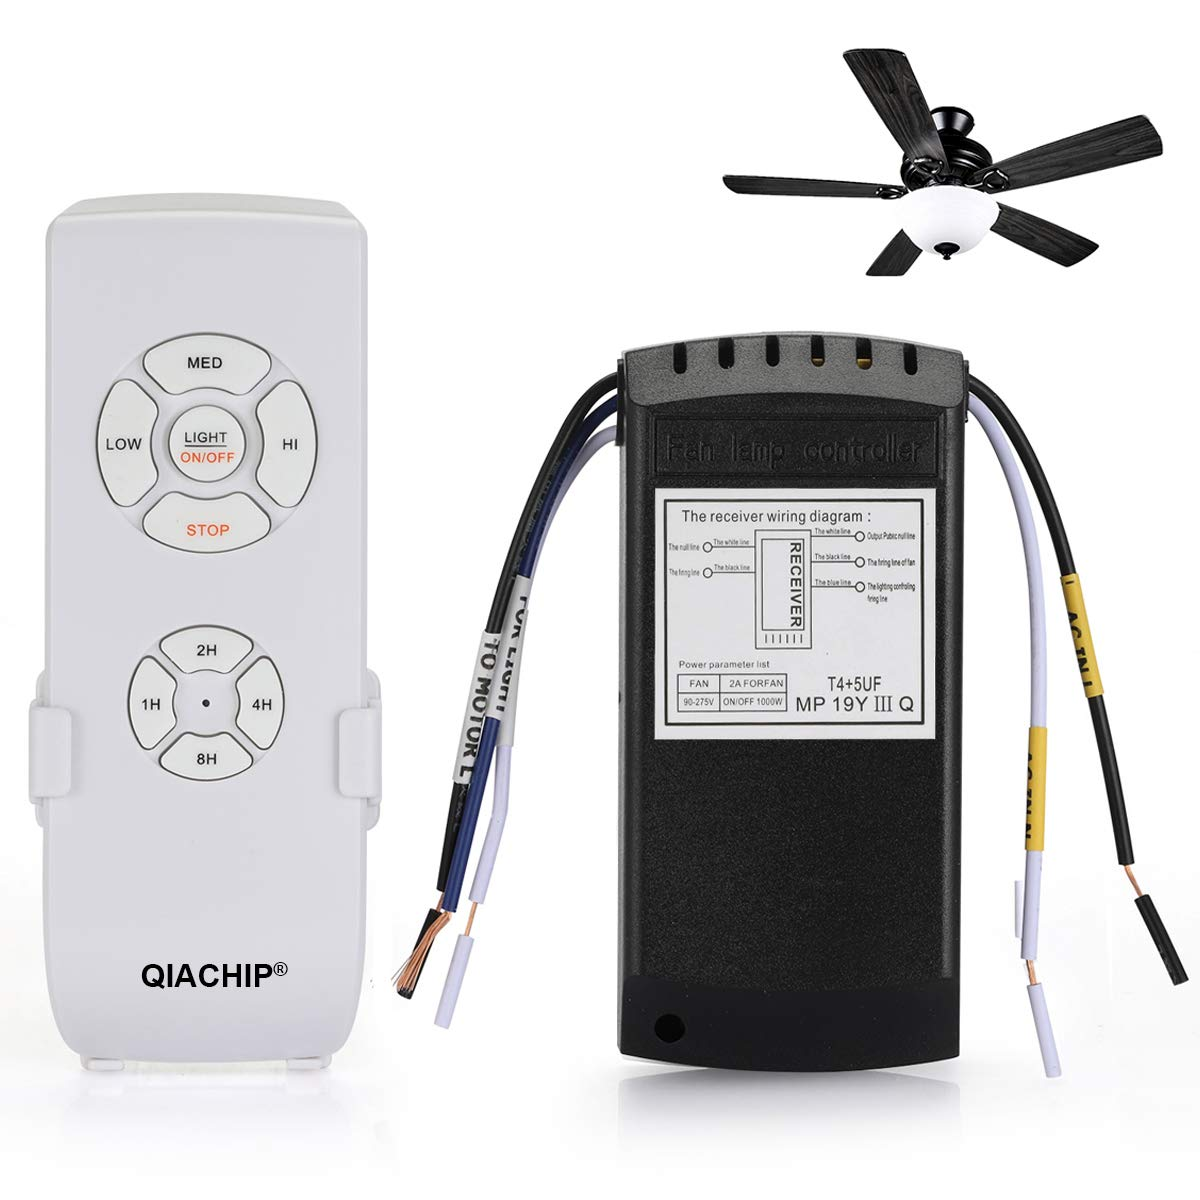 QIACHIP Universal Ceiling Fan and Light Remote Control Kit